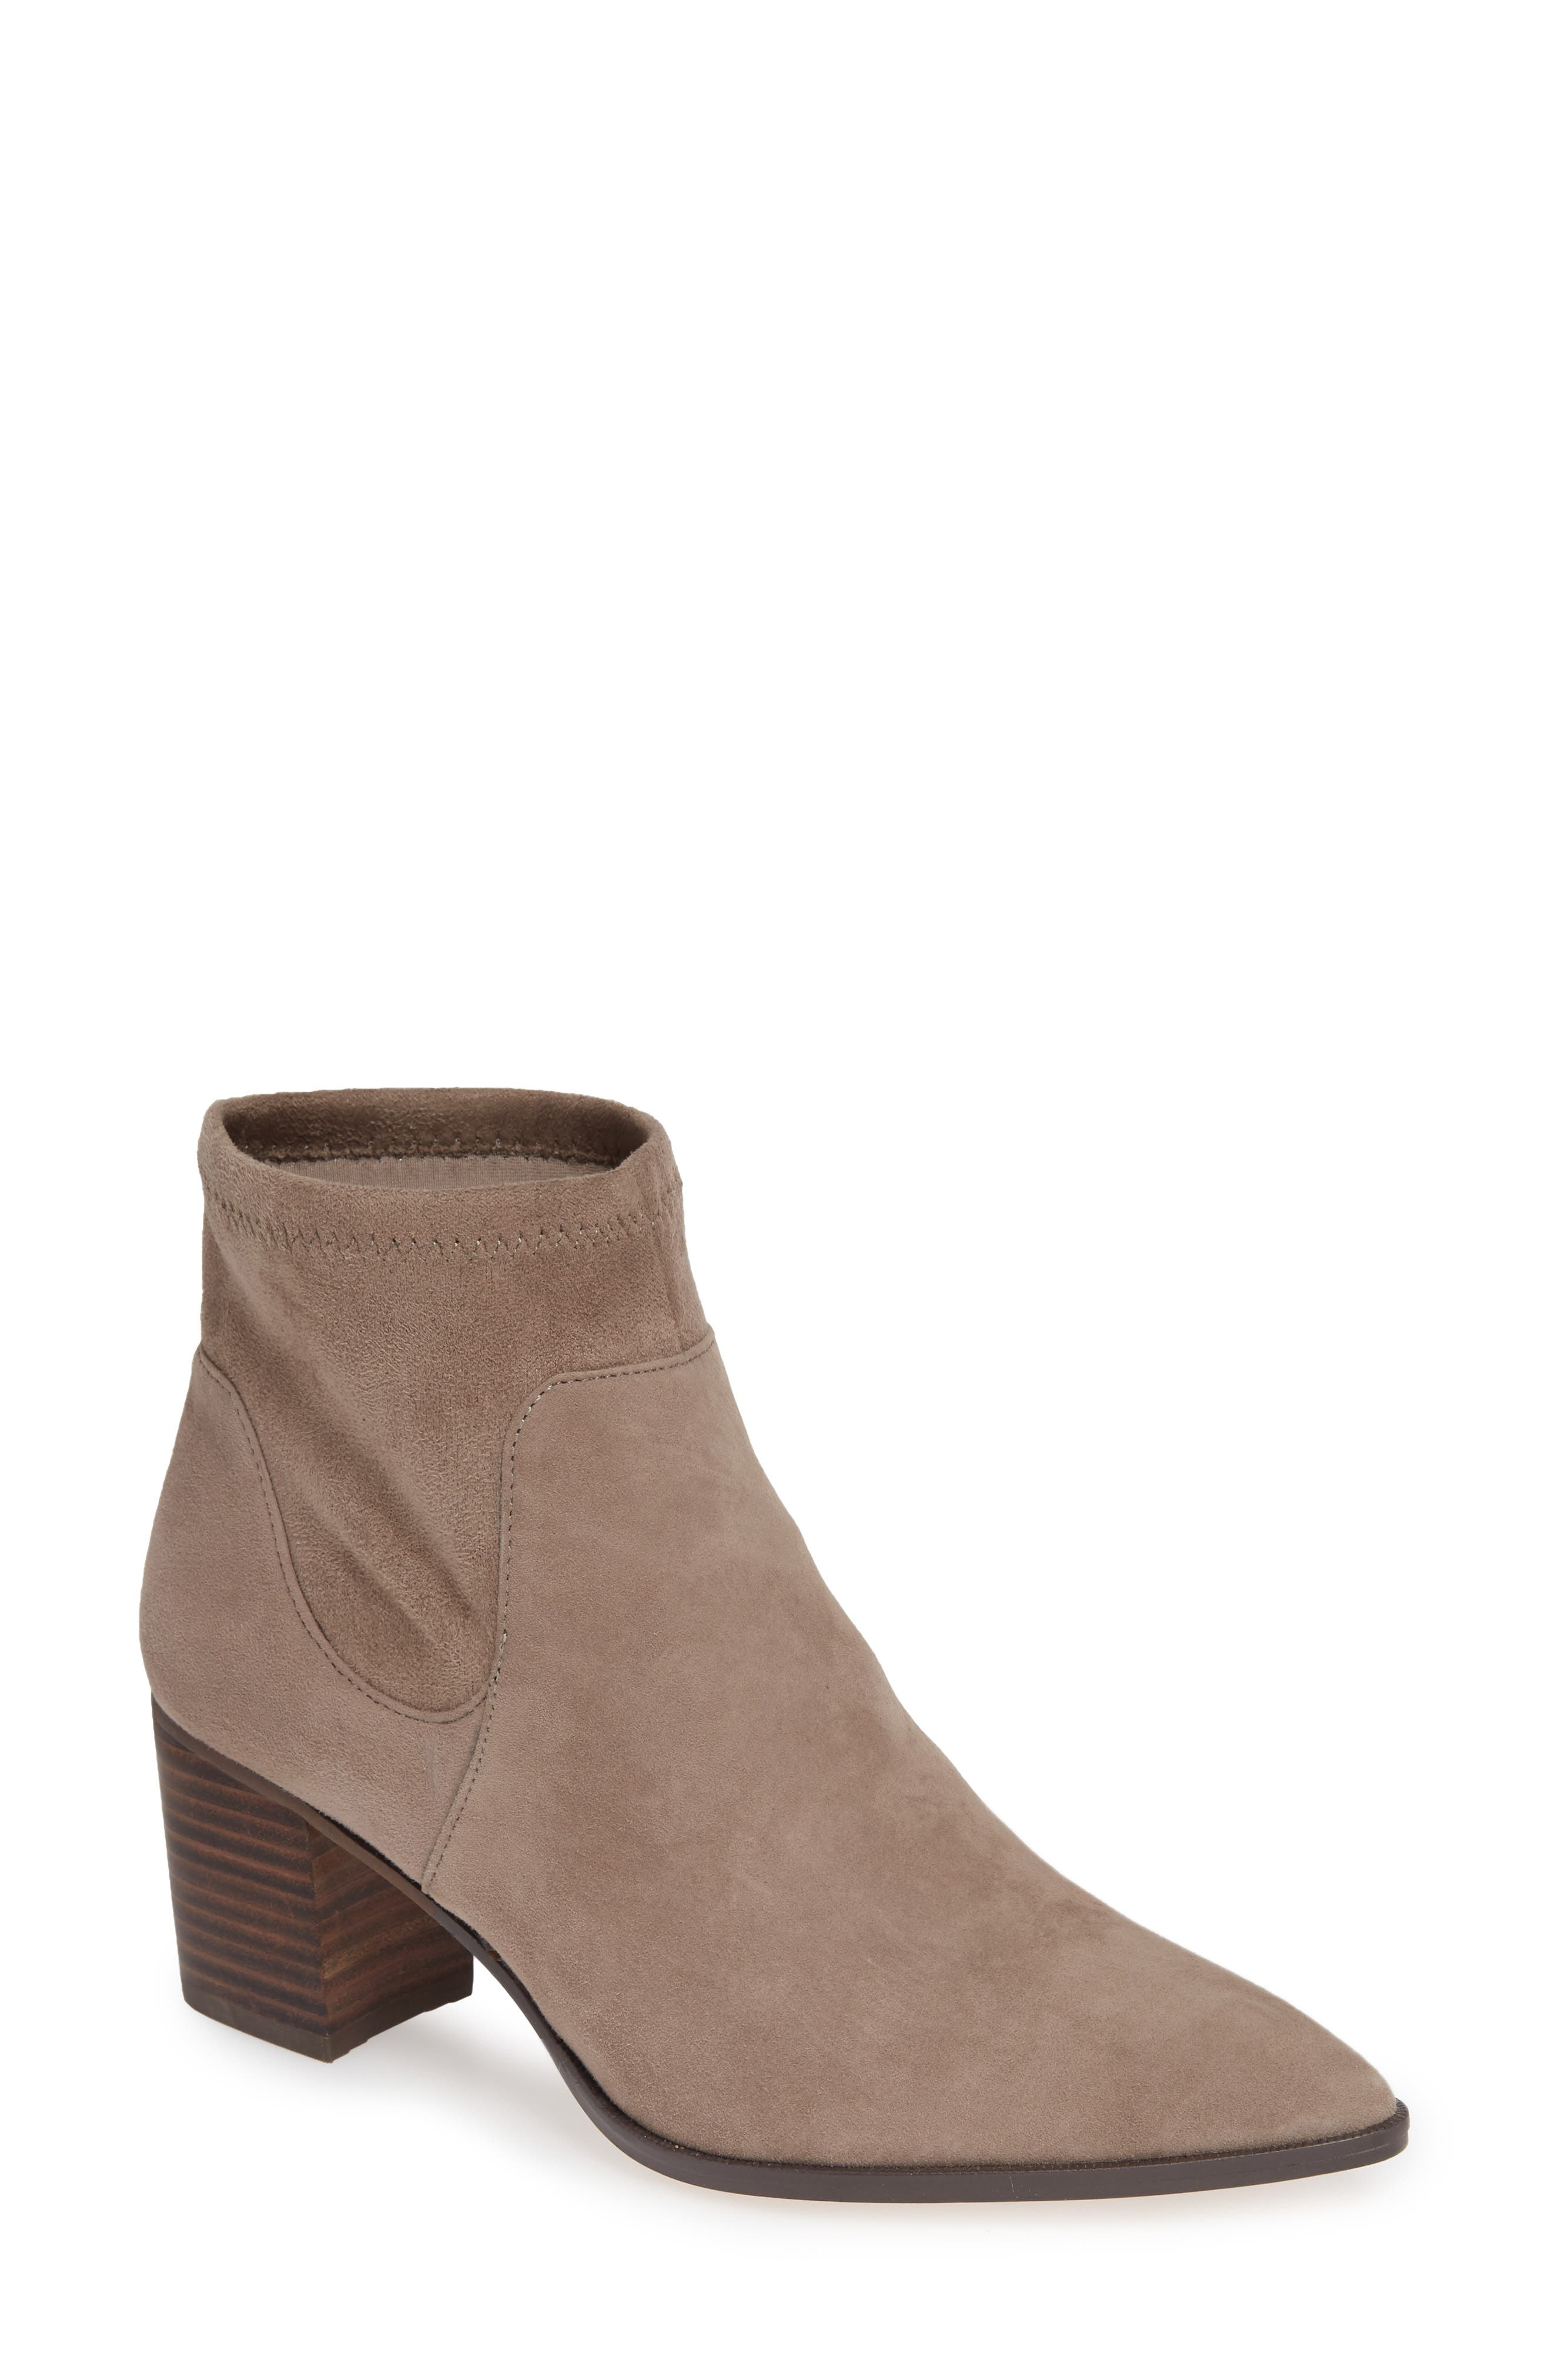 SOLE SOCIETY Dawnina Bootie, Main, color, PORCINI SUEDE